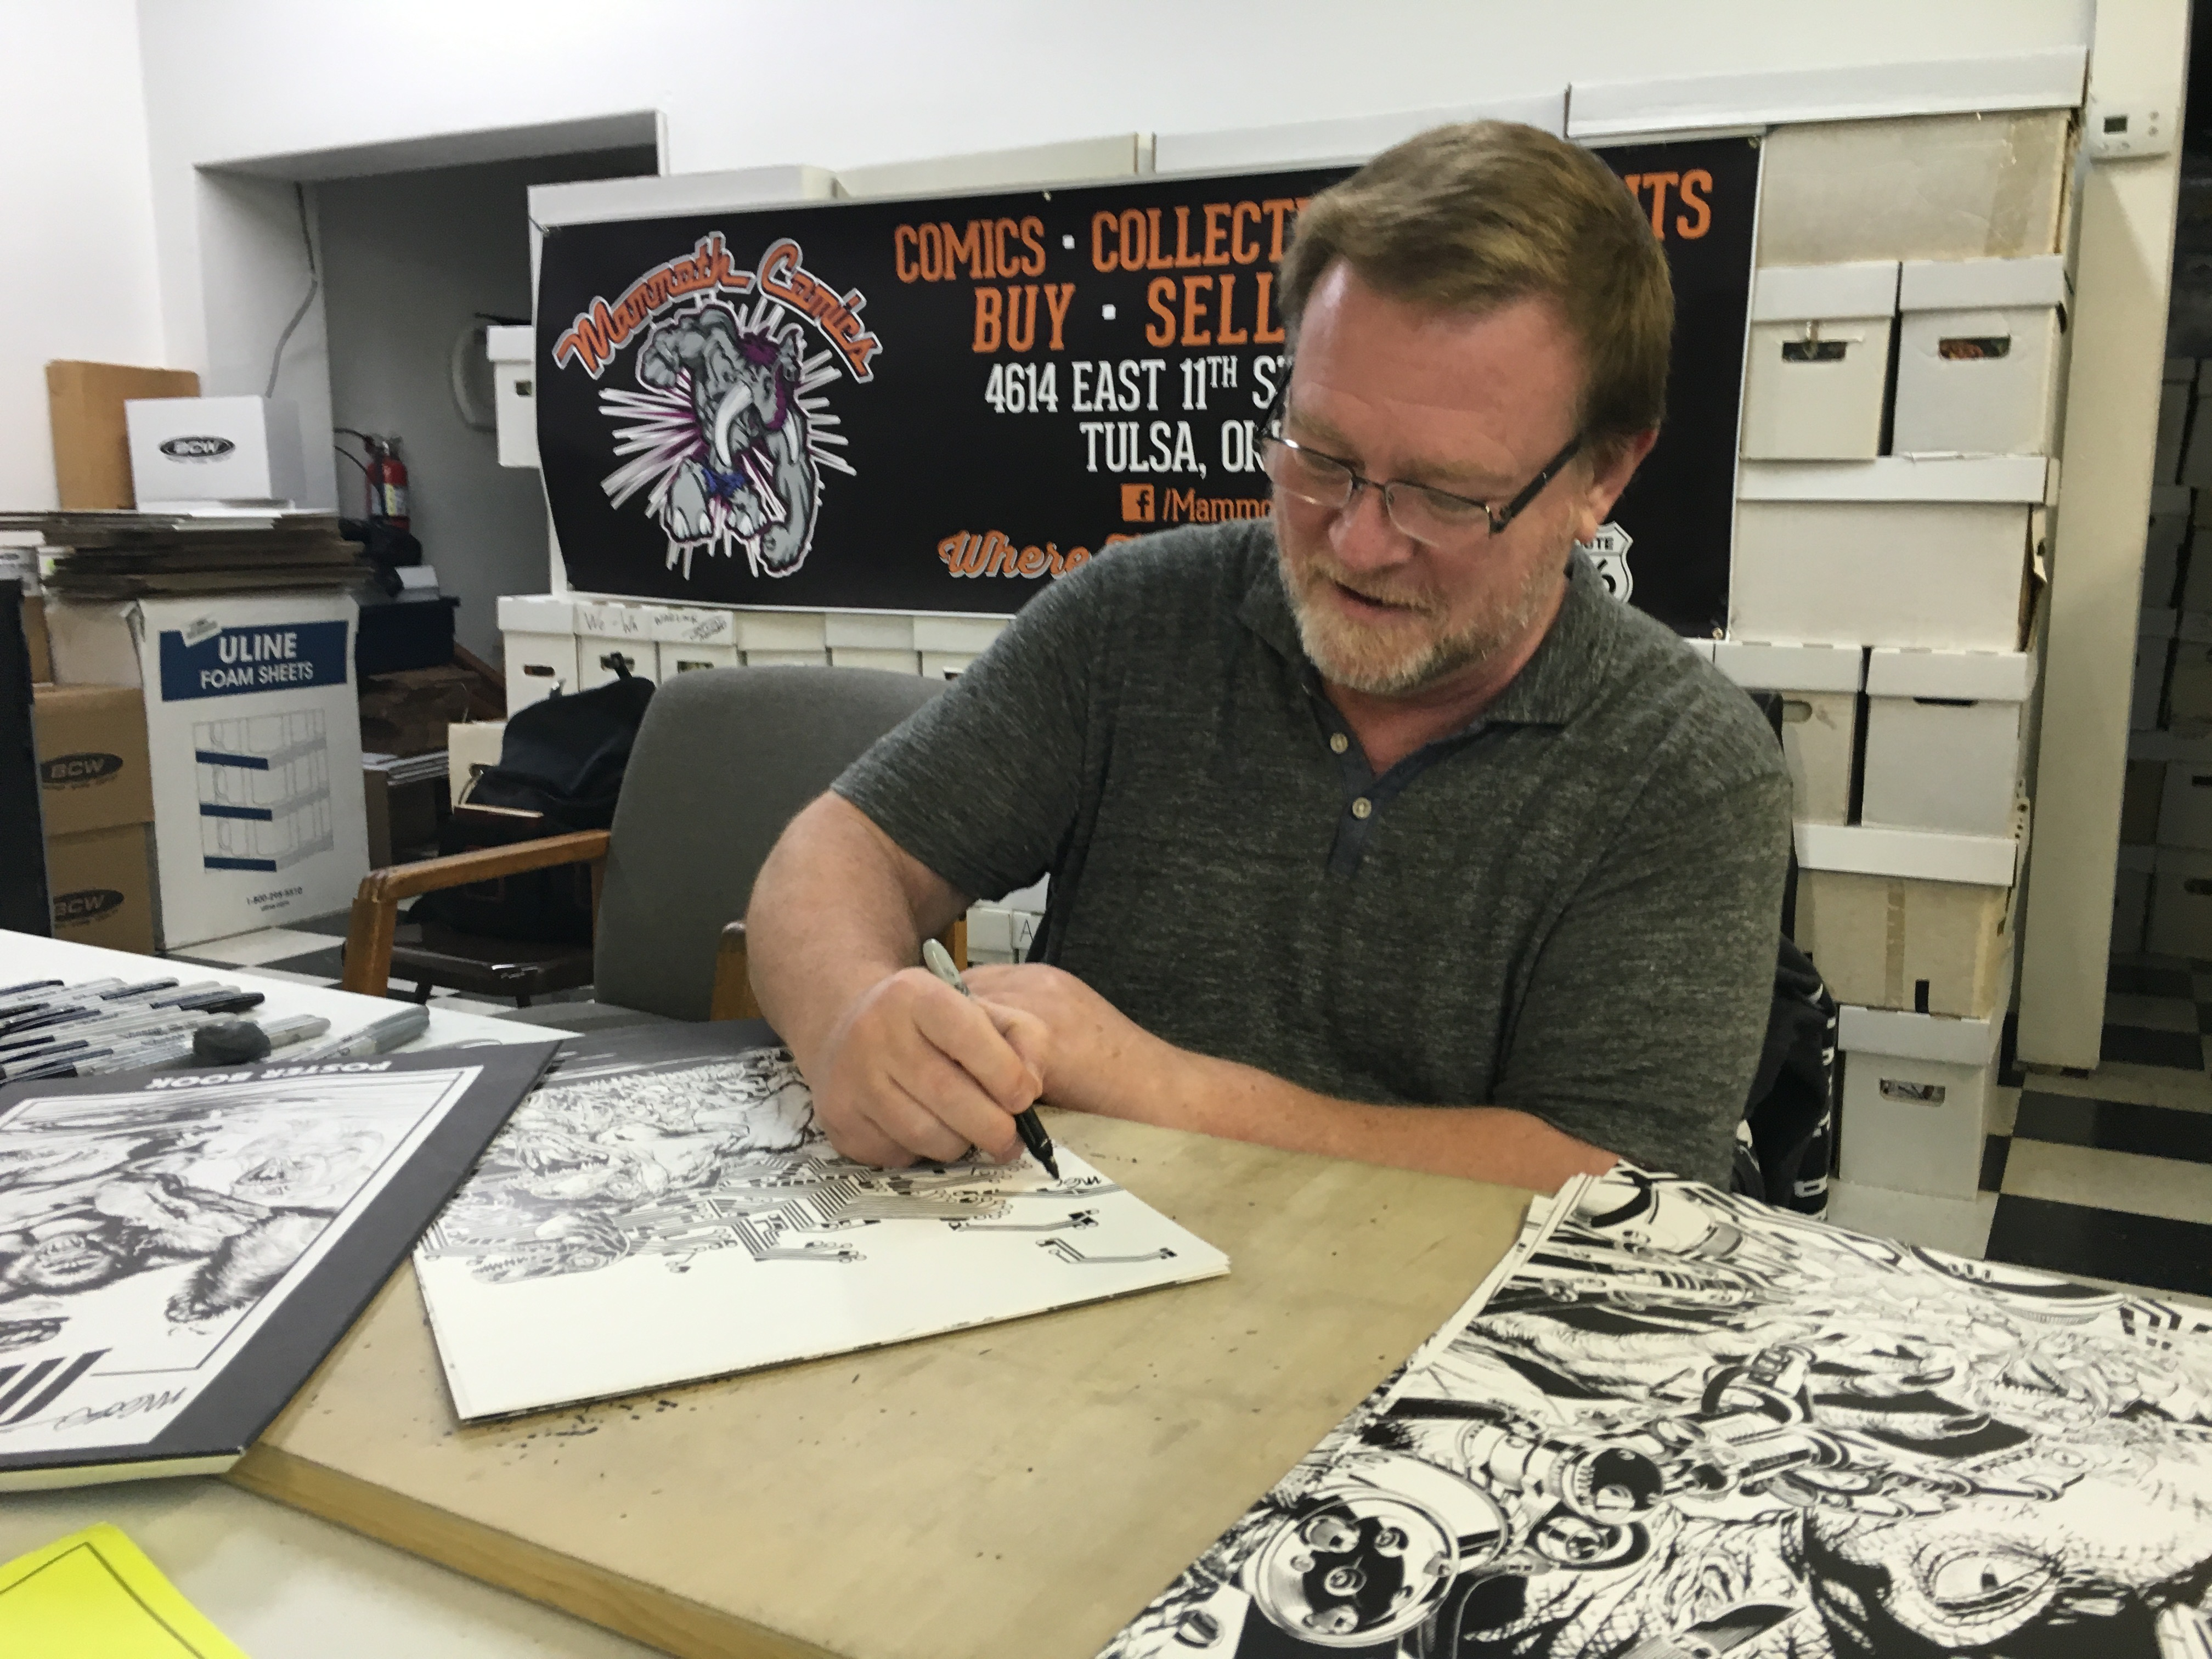 "<span  class=""uc_style_uc_tiles_grid_image_elementor_uc_items_attribute_title"" style=""color:#ffffff;"">Michael Golden at Mammoth Comics</span>"